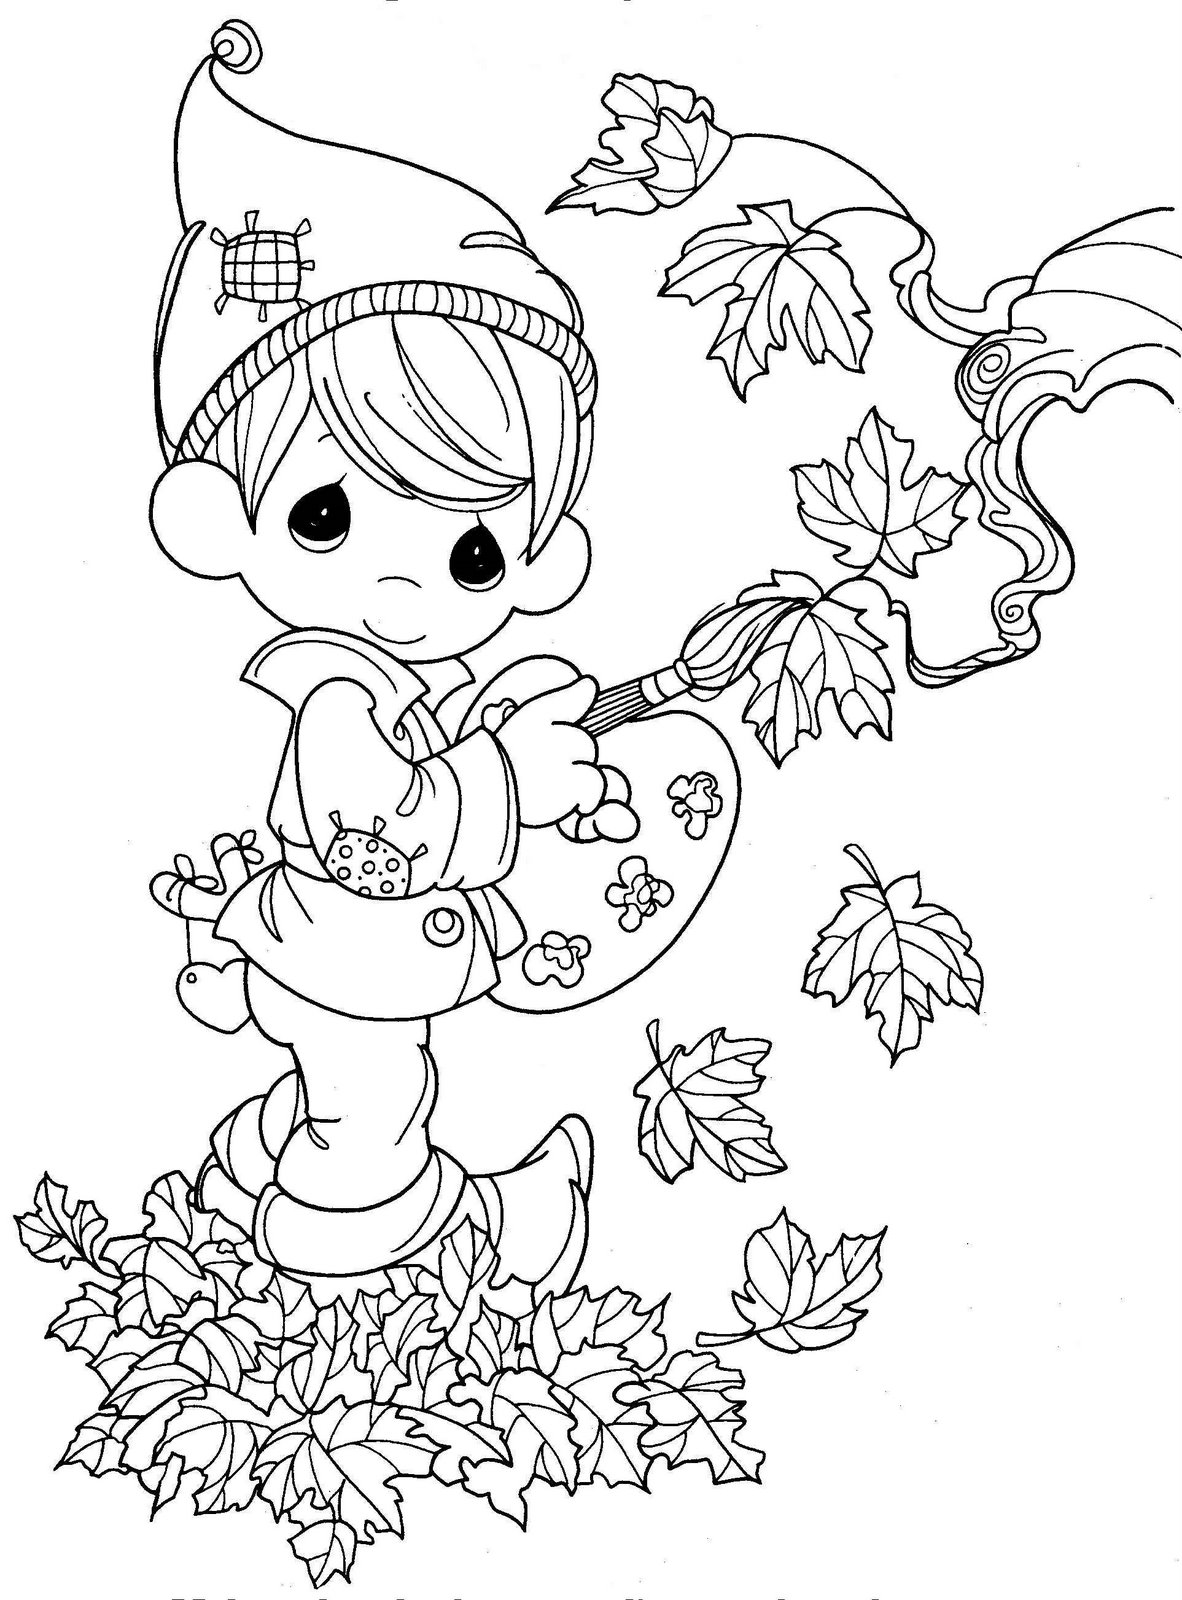 leaves | Leaf coloring page, Fall leaves coloring pages, Free ... | 1600x1182